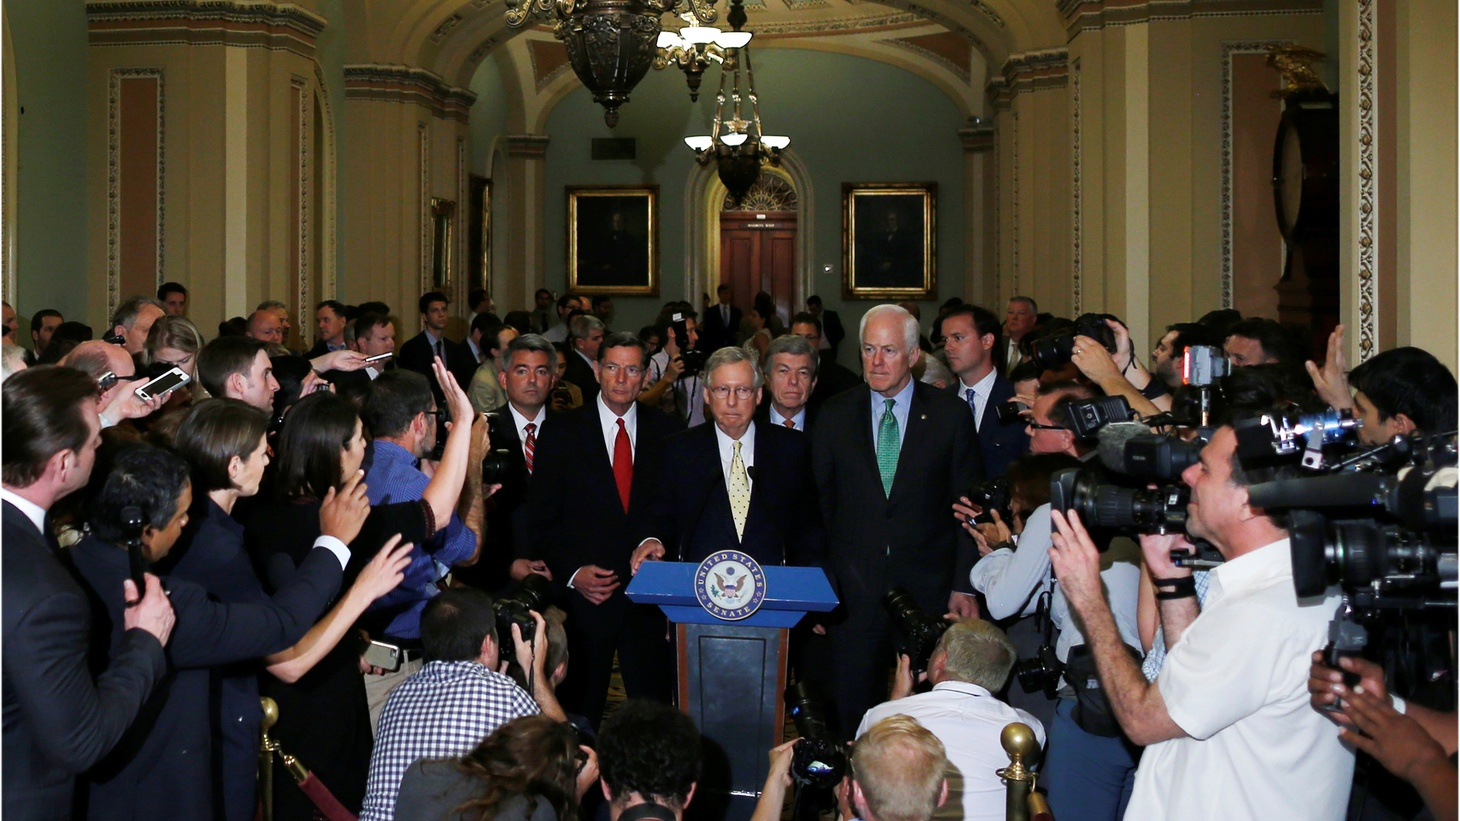 The Senate GOP bill to replace Obamacare is dead -- for now. Several senators have come out against the idea to immediately repeal the current health care law. So now what? Will Republicans suffer politically in next year's midterm elections? What does this mean for their agenda and their party?